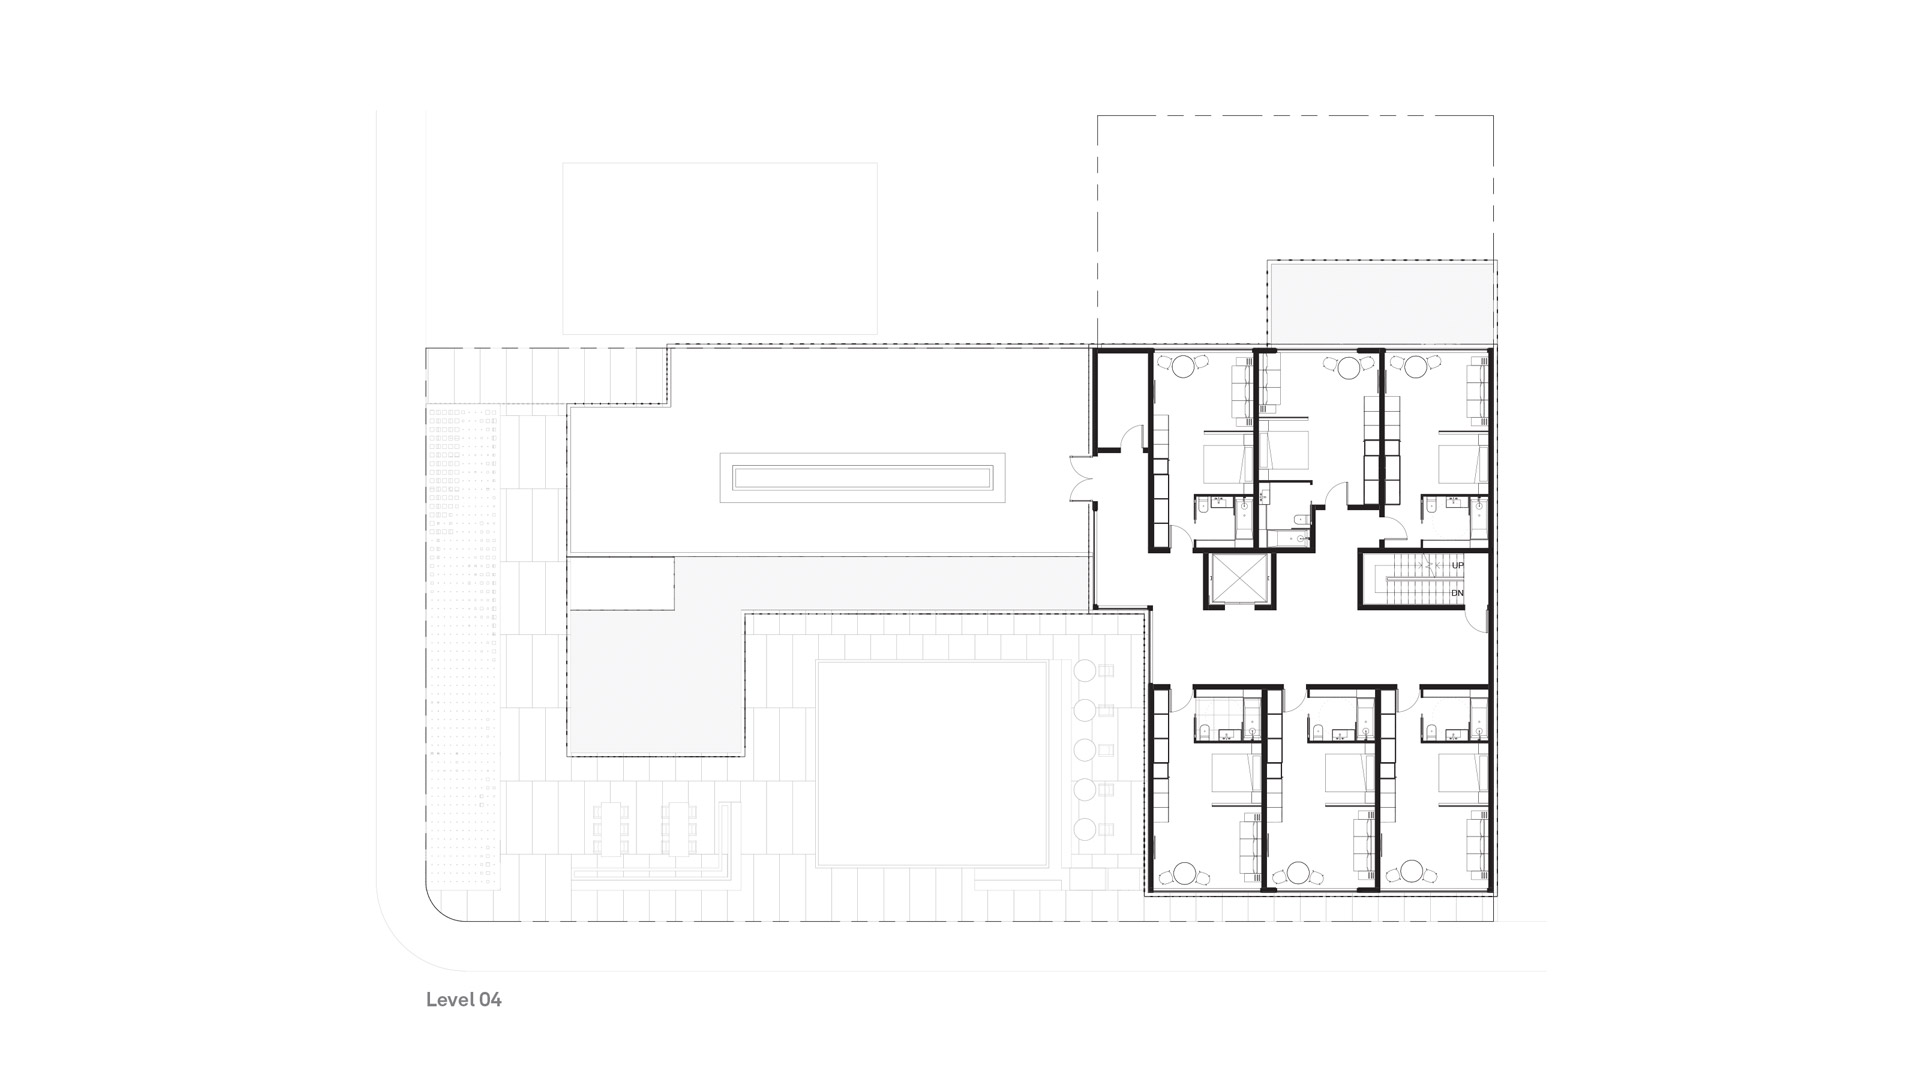 C7 Hotel + Brewery - Level 04 Plan — Timothy Mandody